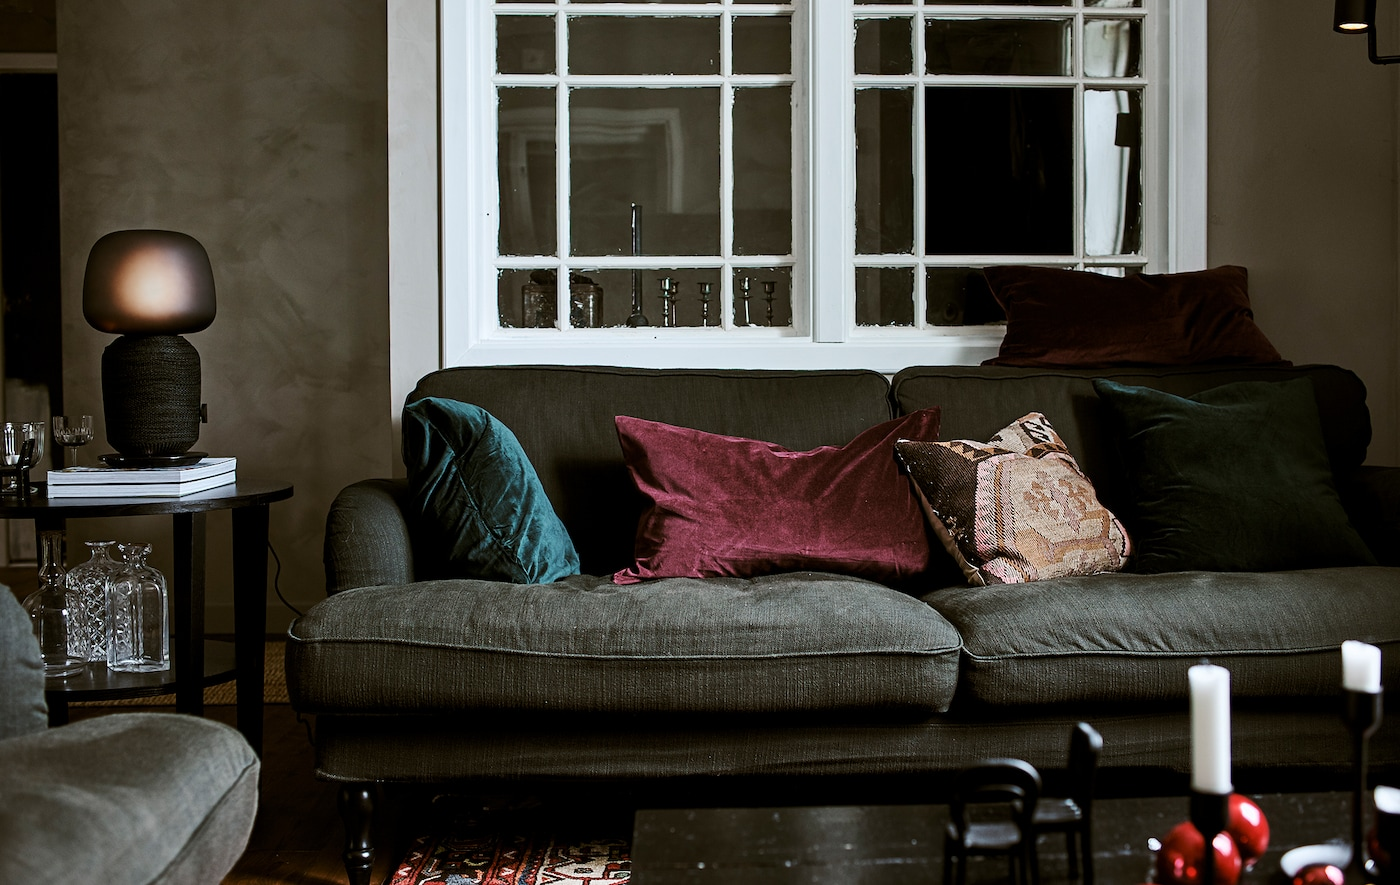 Green sofa with jewel-colored cushions in a living room with interior window, coffee table with table lamp and Persian rug.